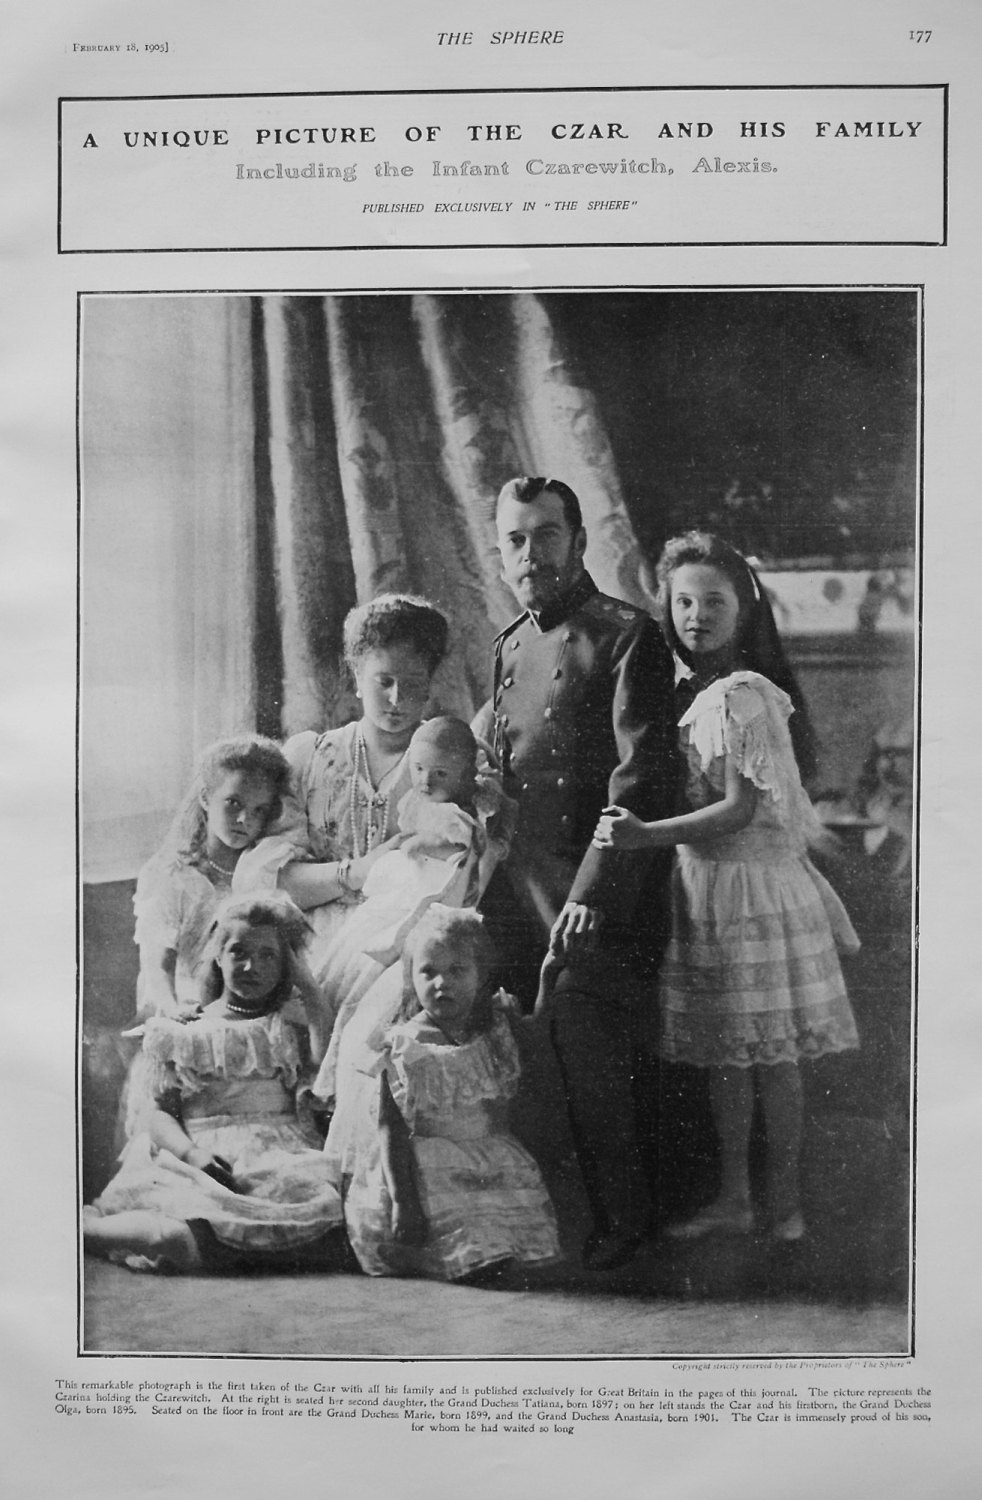 A Unique Picture of the Czar and His Family including the Infant Czarevitch